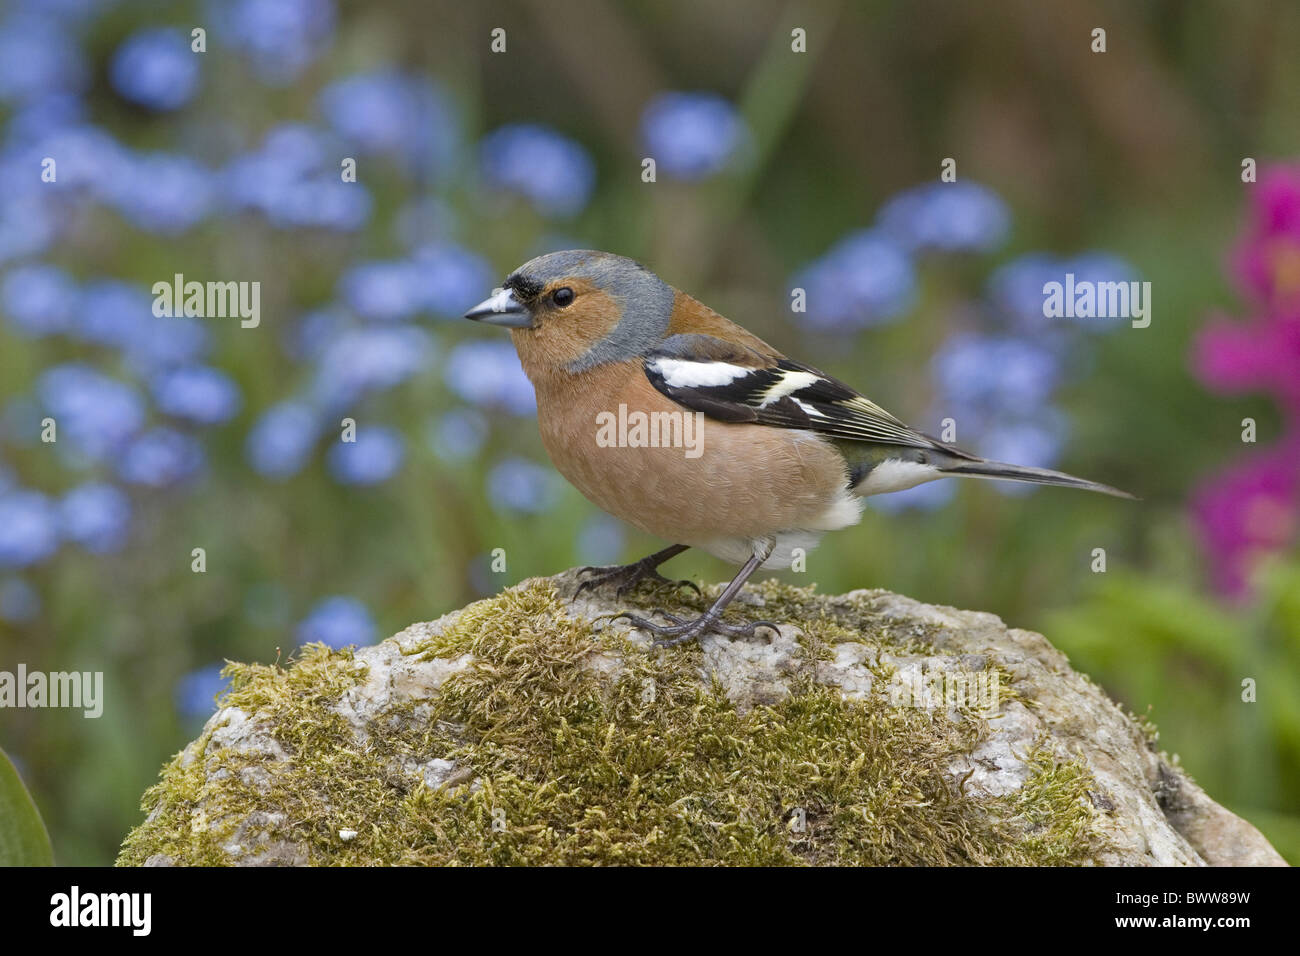 Chaffinch (Fringilla coelebs) adult male, perched on rock in garden, England, june - Stock Image